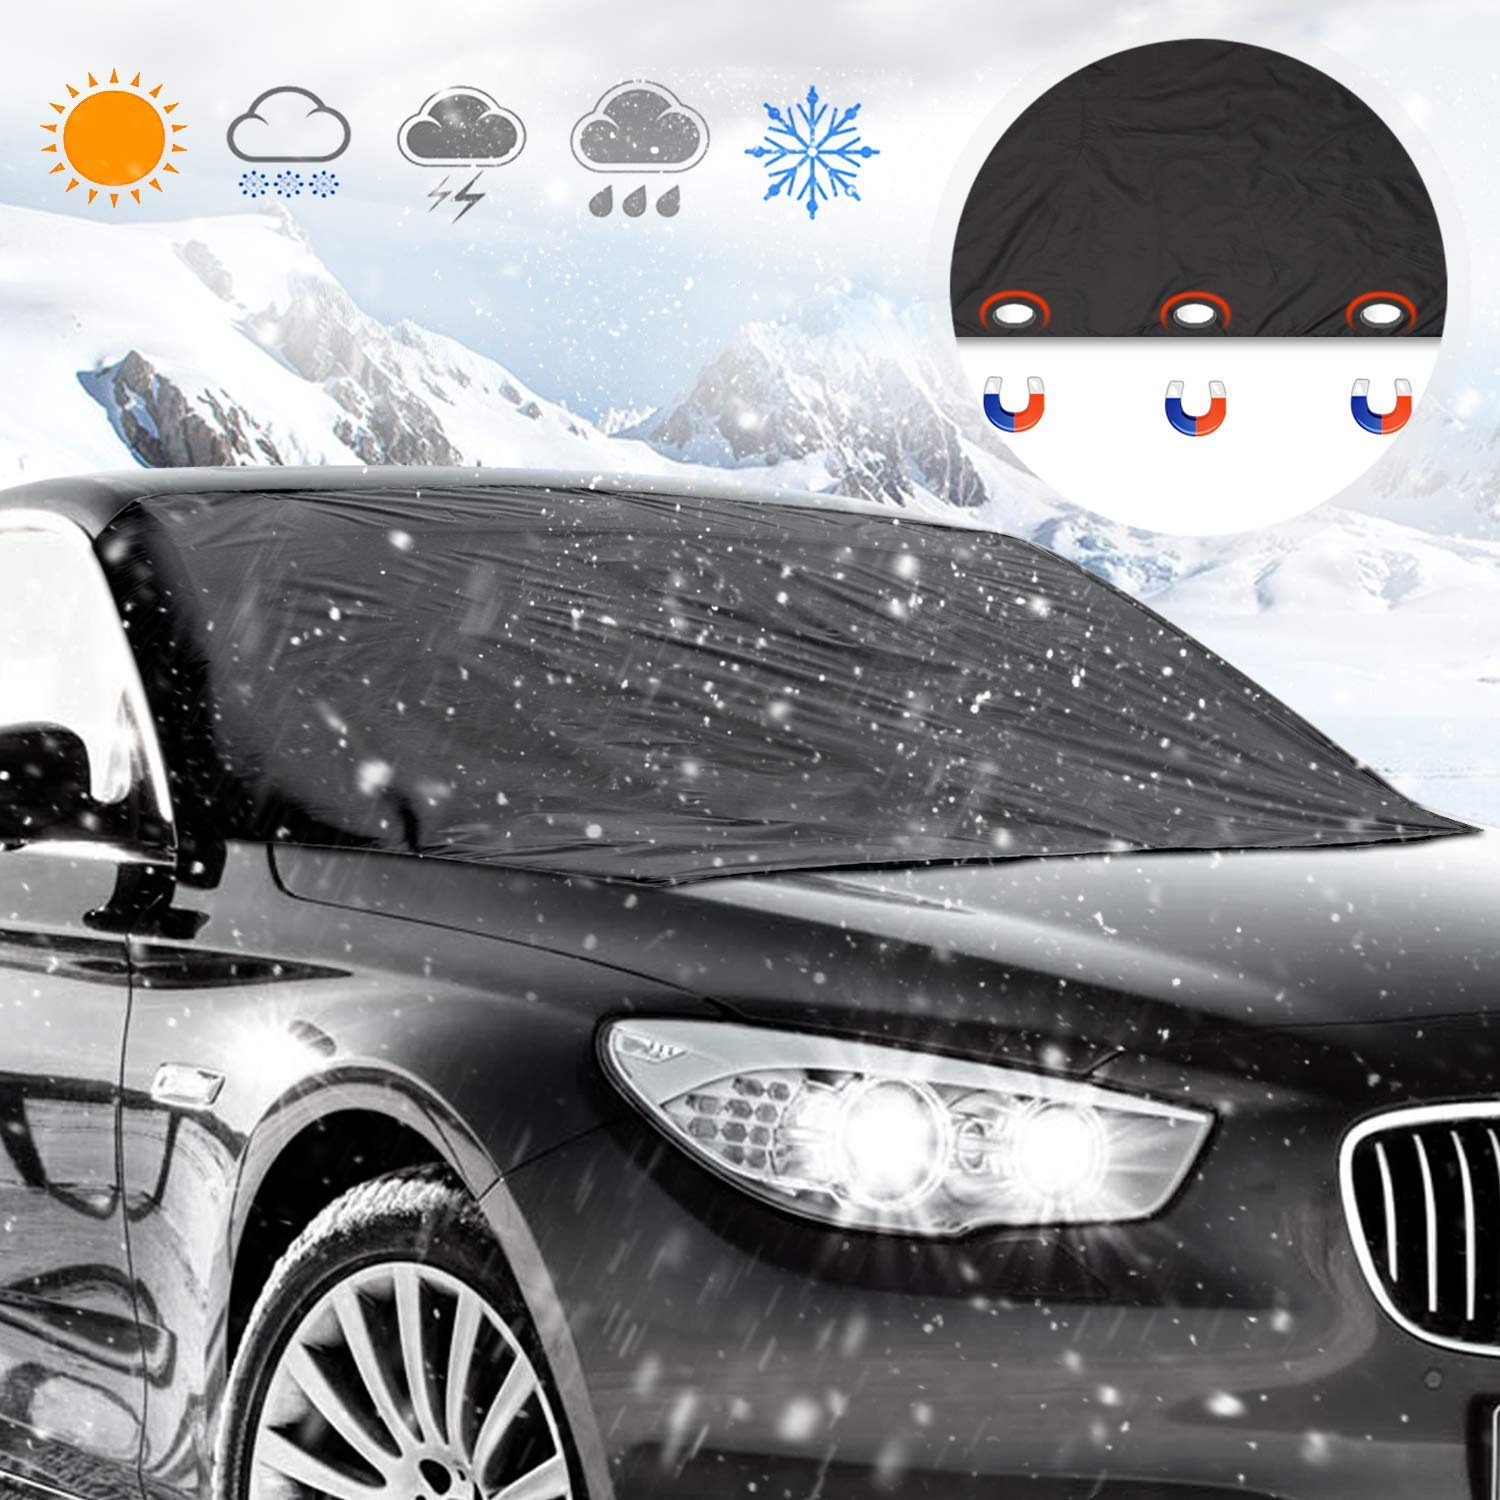 Windshield Snow Cover, Lypumso Windshield Cover Keep your Vehicle Exterior Frost Free and Clean, Blocking the heat of the sun, blocking snow, fallen leaves, bird excrement. Elastic Hooks Design Will Not Scratch Paint, Fits Most Car with (85' x 49')